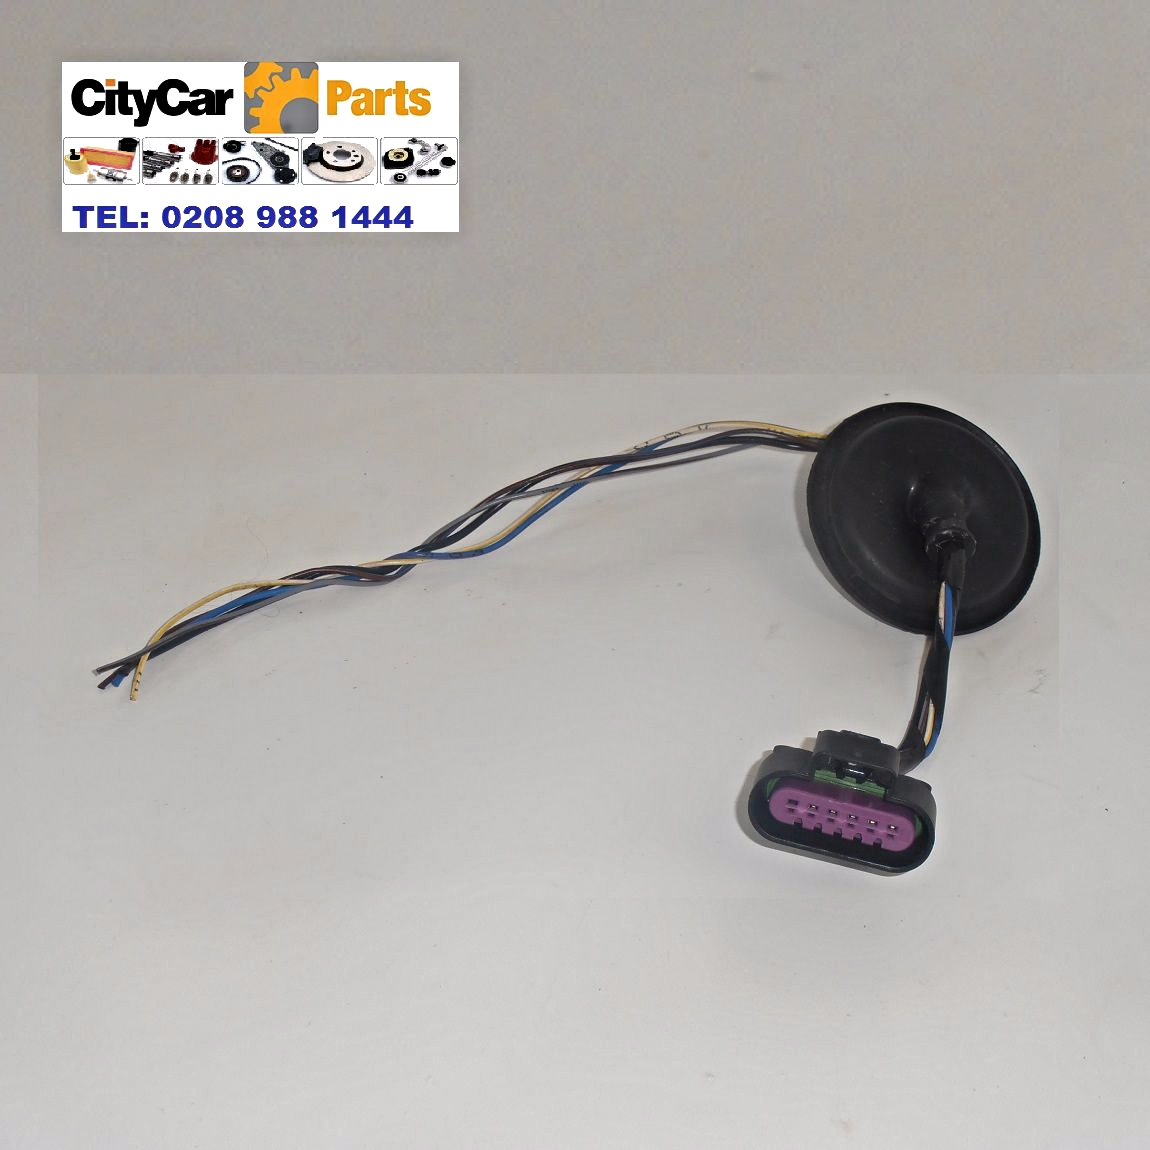 Genuine Vauxhall Insignia 2008 To 2013 Driver Side Rear Lamp Bulb Wiring Harness Holder